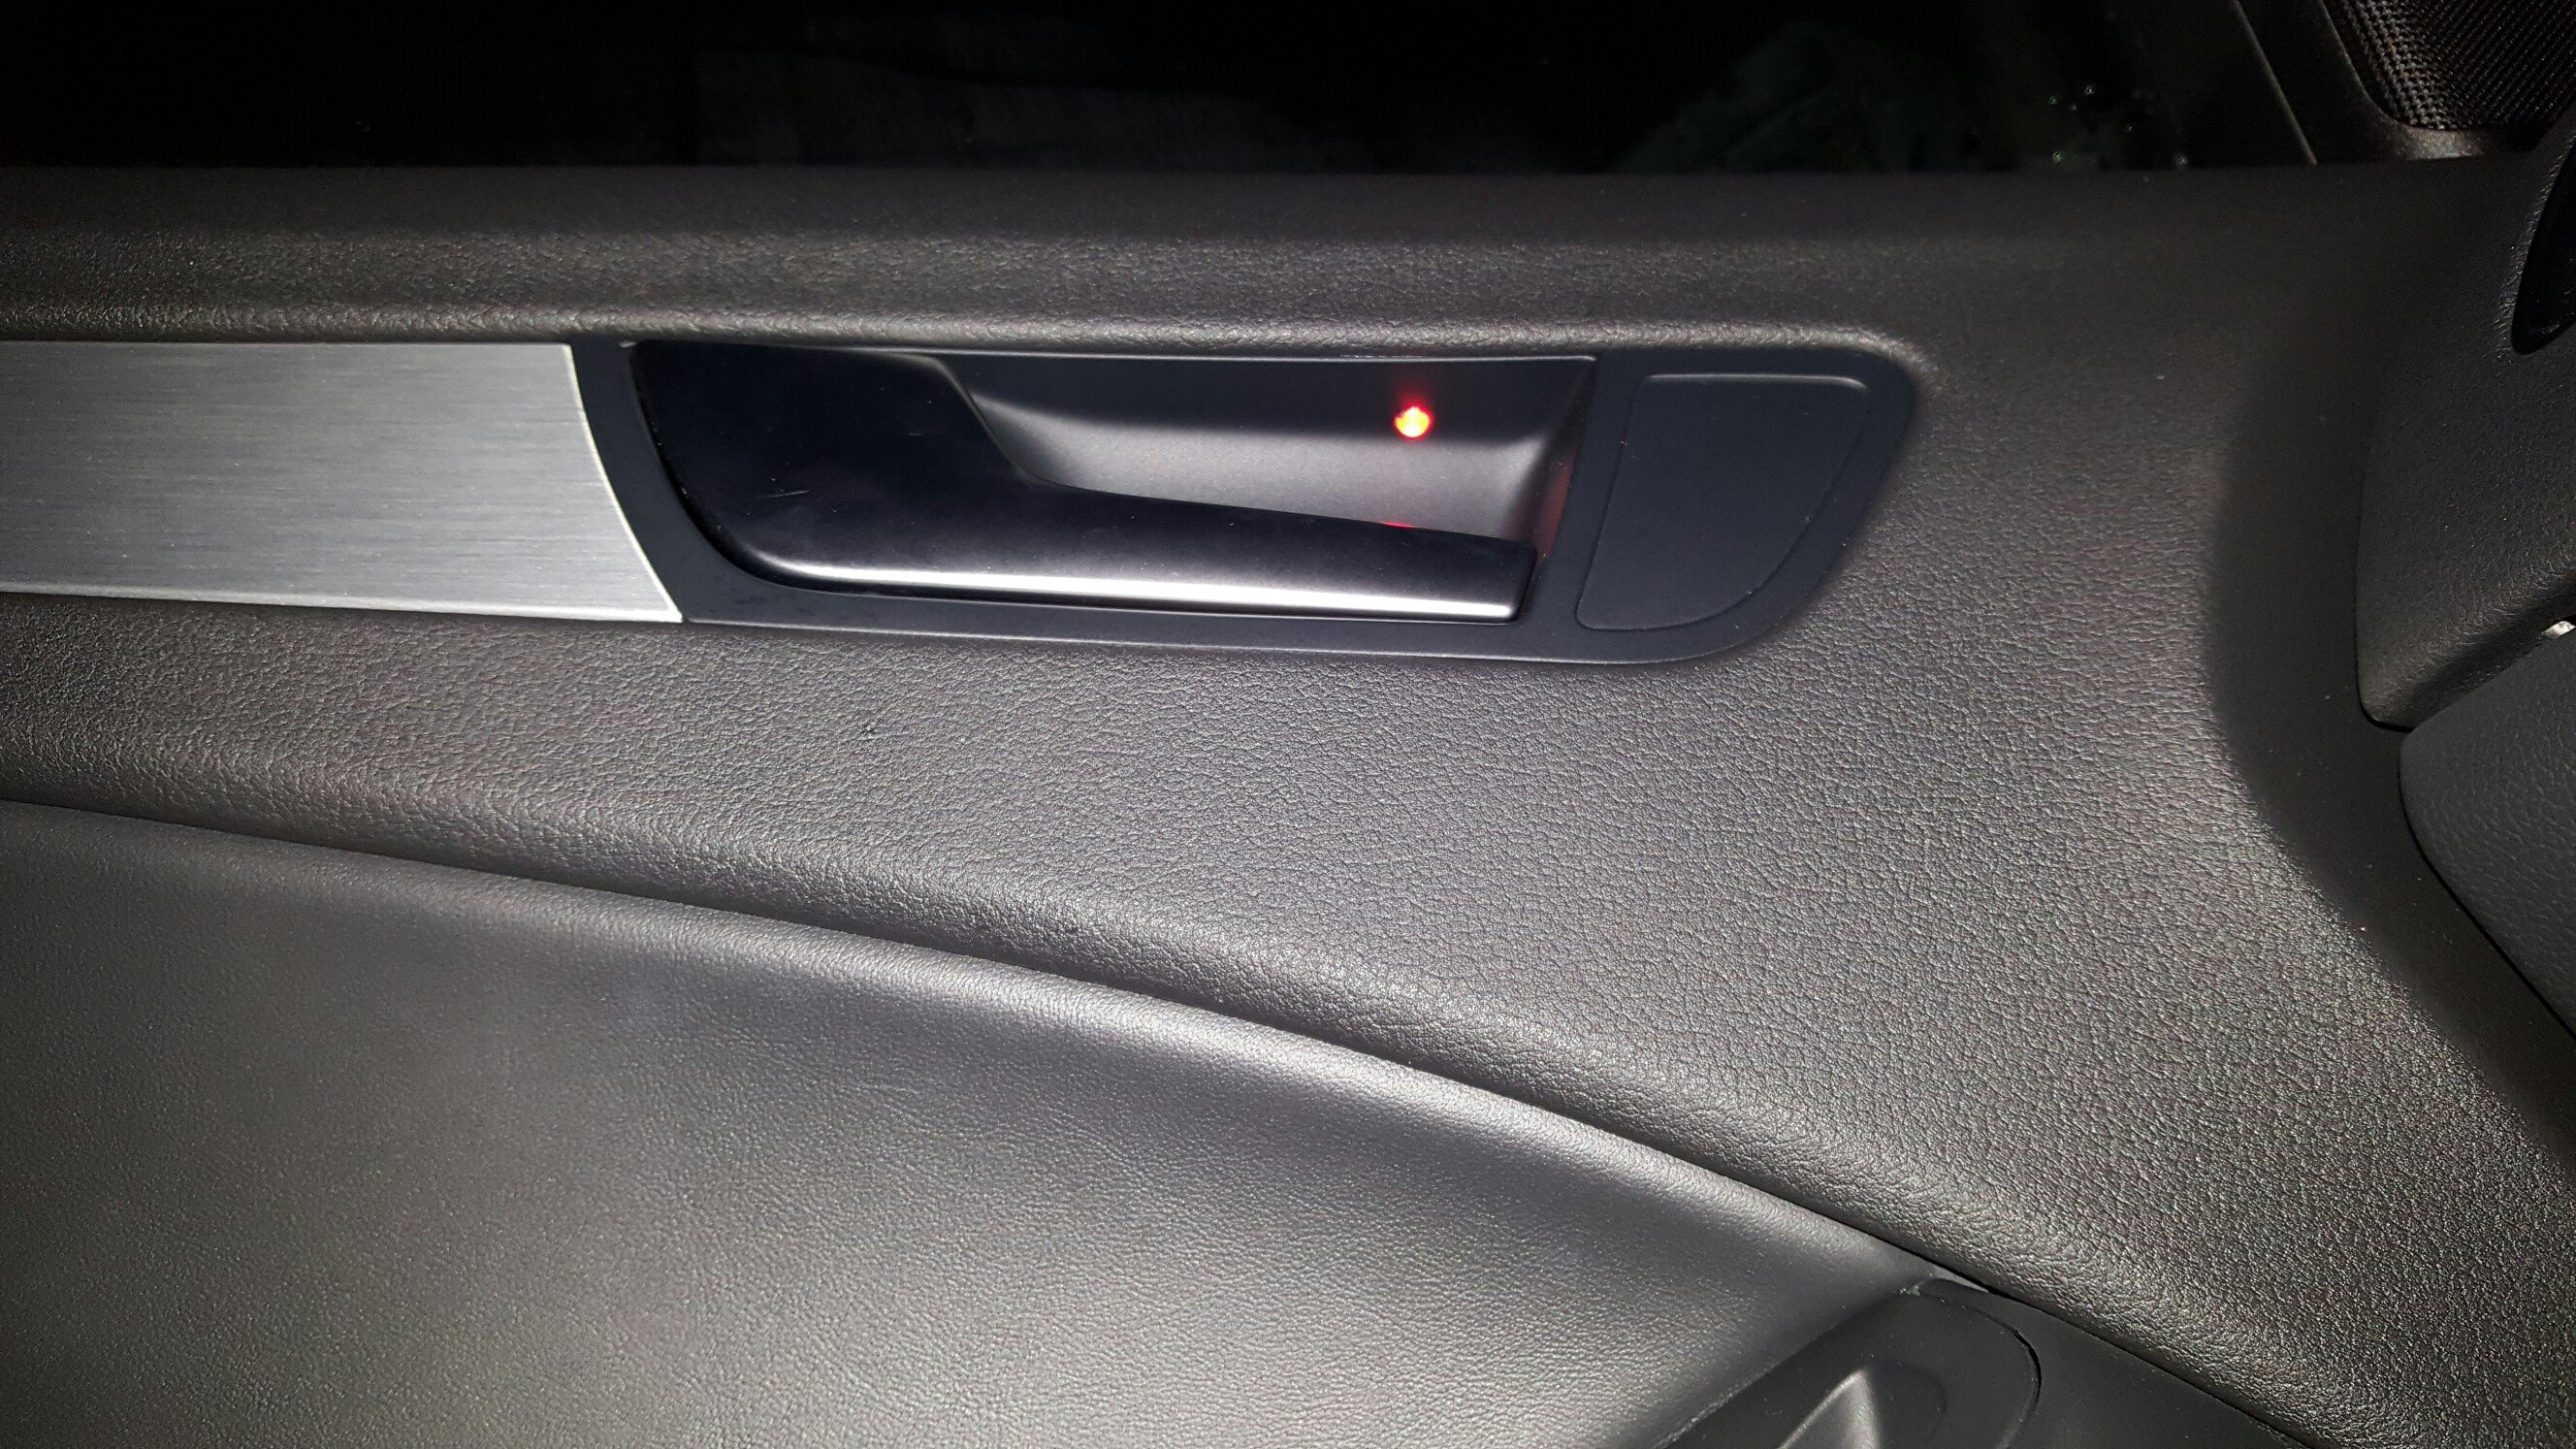 Glove box light retro fit and puddle light information | Page 2